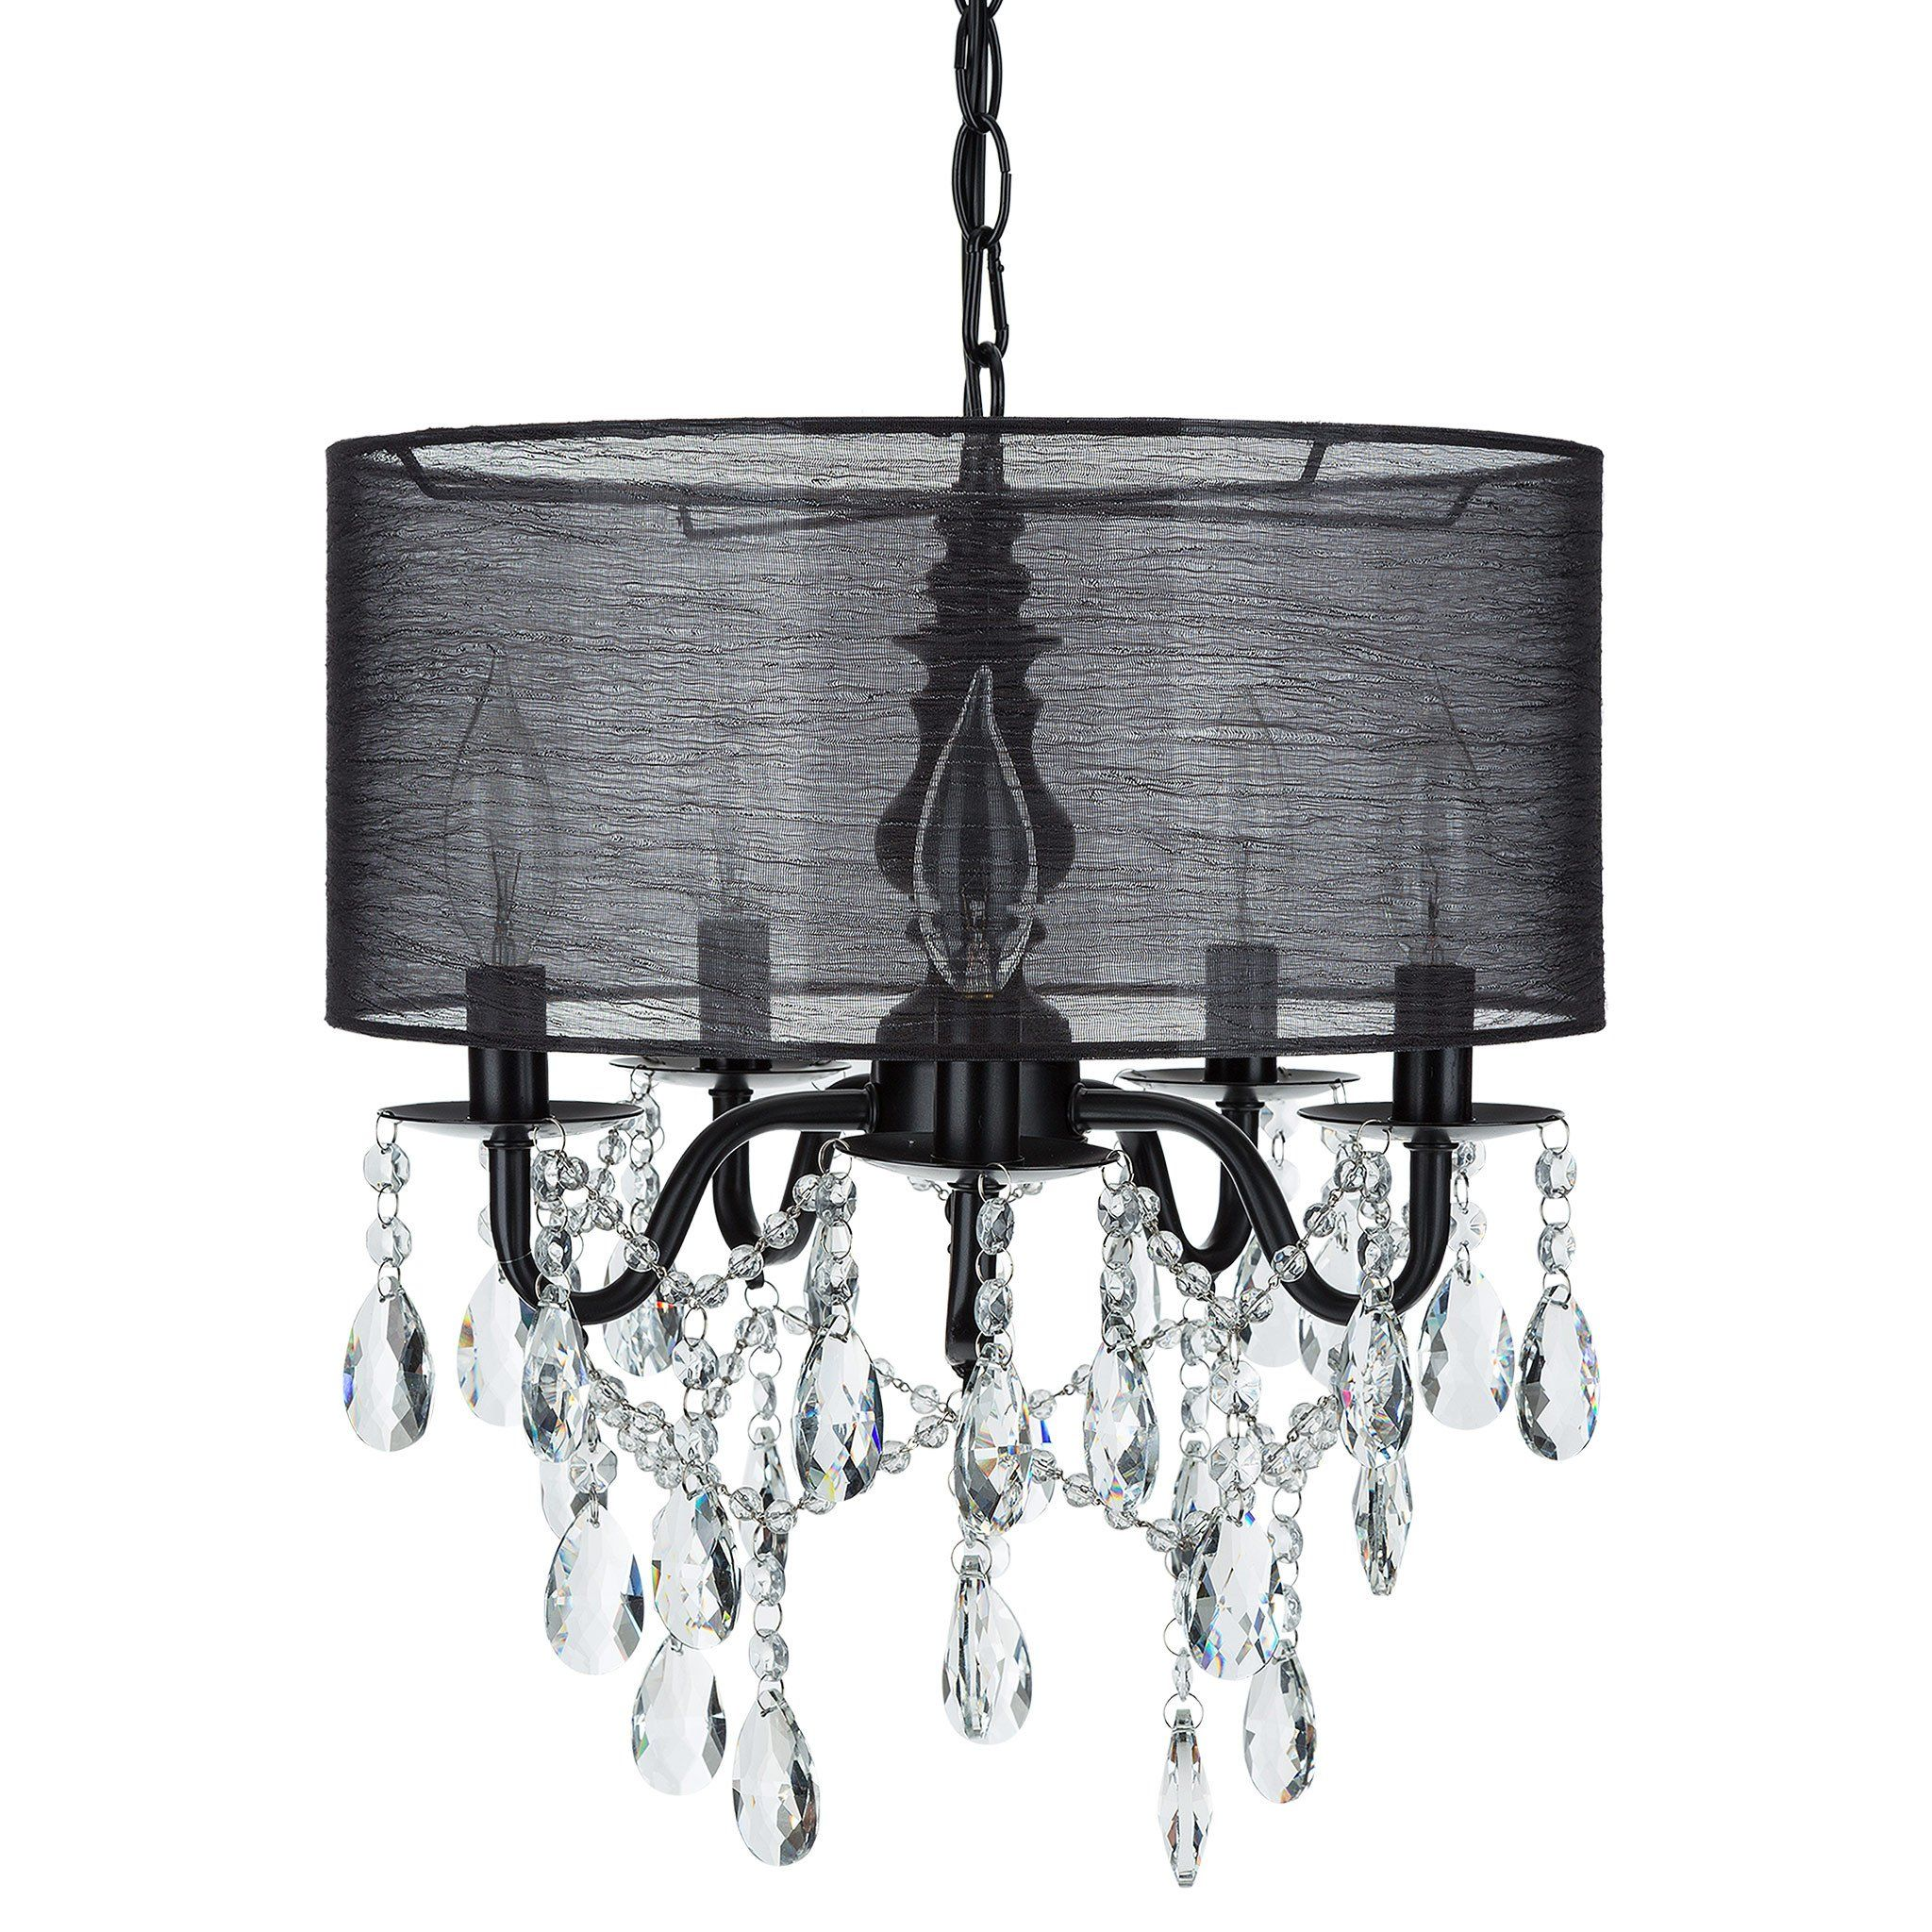 5 light crystal plug in chandelier with cylinder shade black 5 light crystal plug in chandelier with cylinder shade black aloadofball Images